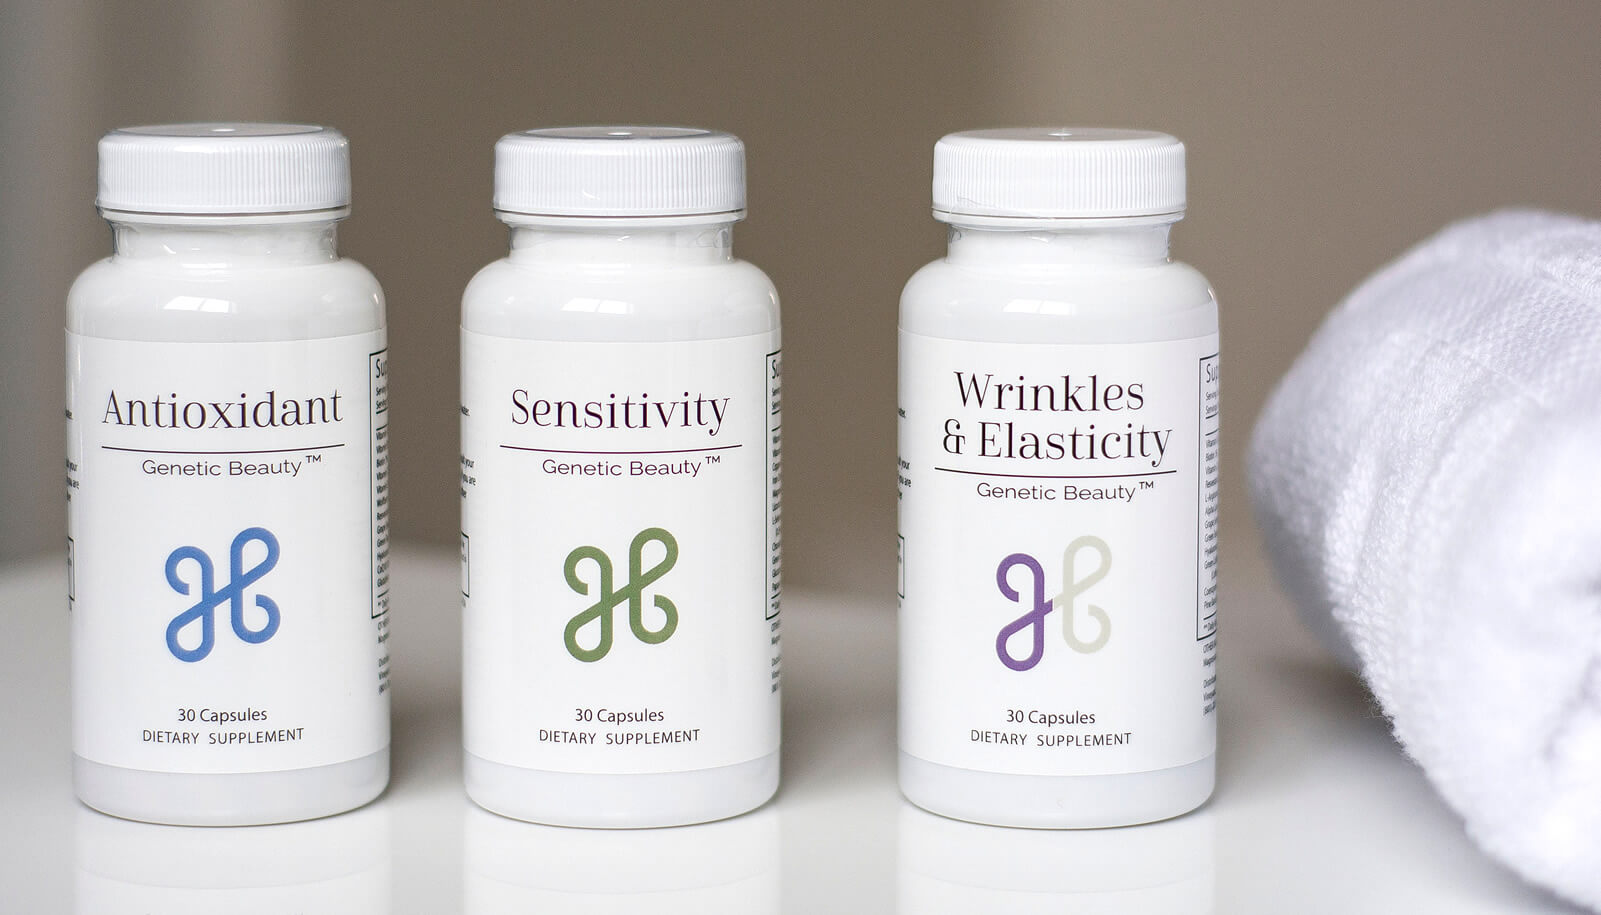 Genetic Beauty skincare supplements displayed on a shelf